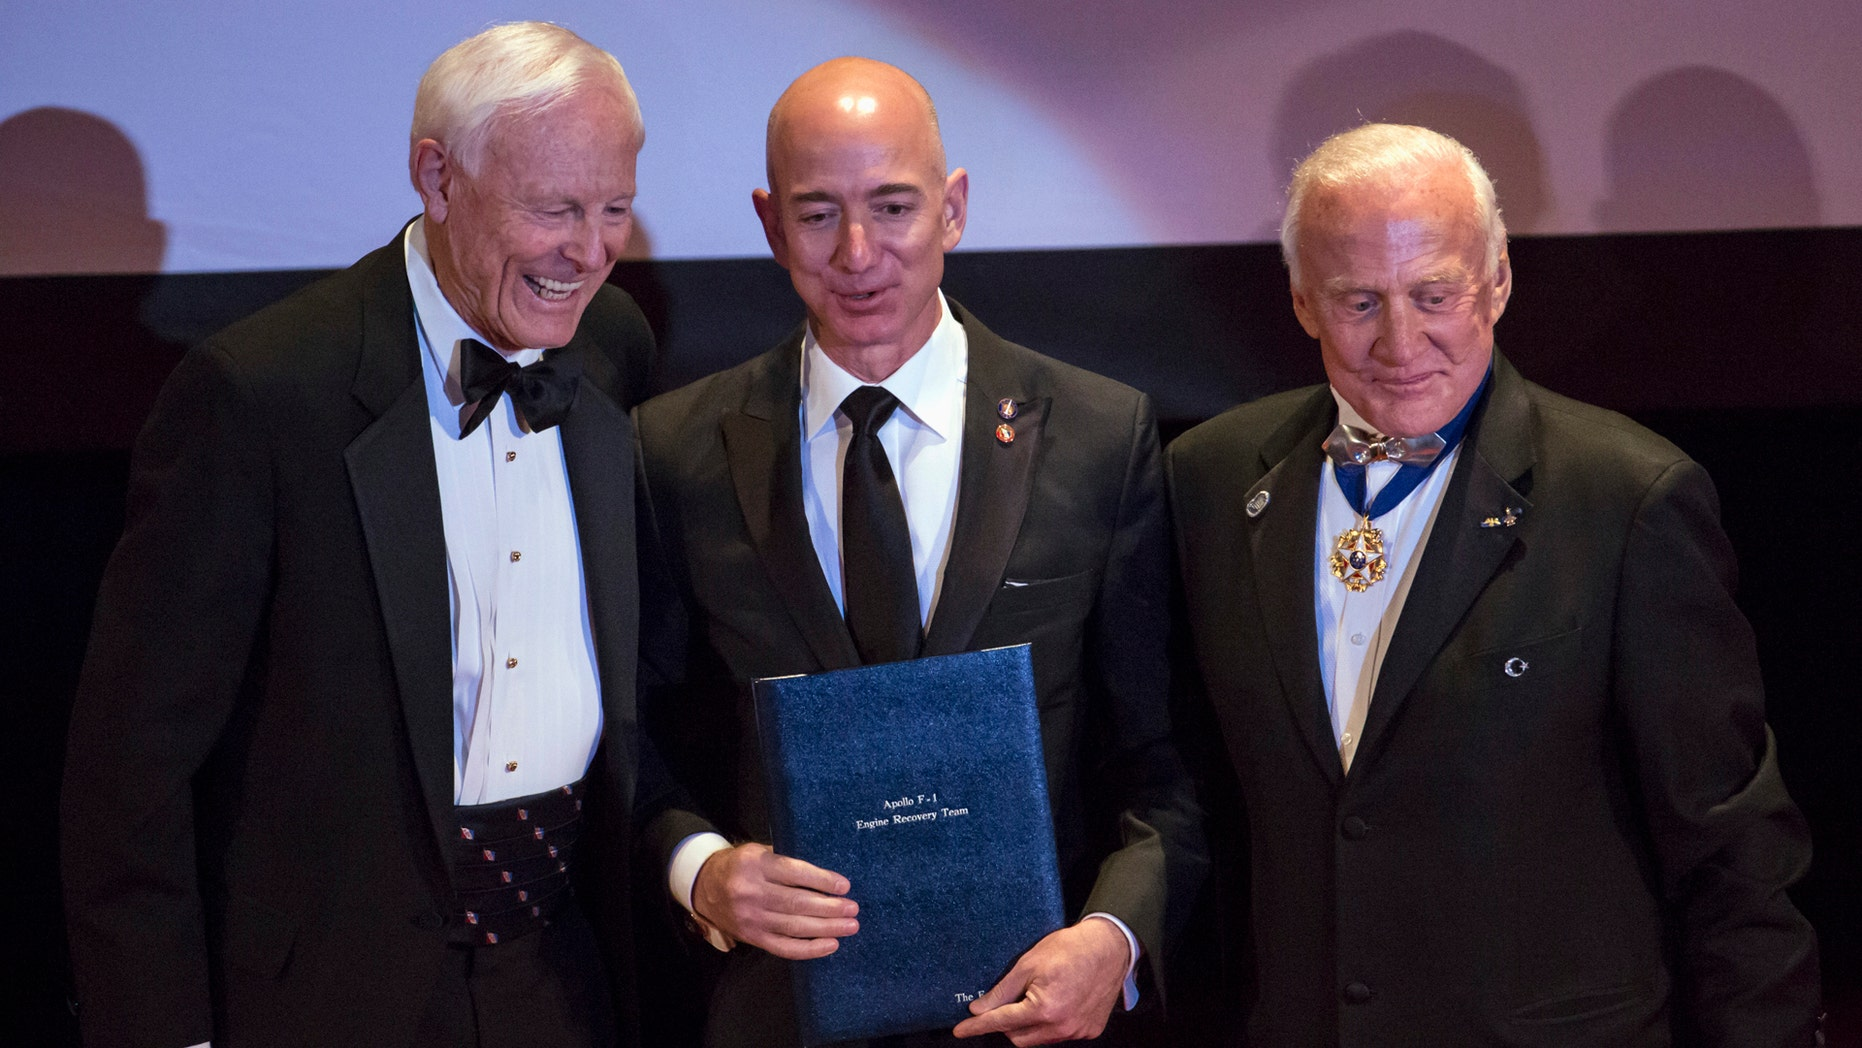 """File photo: Explorers Club President Alan Nichols (L) and Astronaut Edwin """"Buzz"""" Aldrin (R) present the Citation of Merit to Amazon CEO and Chairman Jeff Bezos (C) and the Apollo F-1 Search and Recovery Team, at the 110th Explorers Club Annual Dinner at the Waldorf Astoria in New York March 15, 2014. (REUTERS/Andrew Kelly)"""